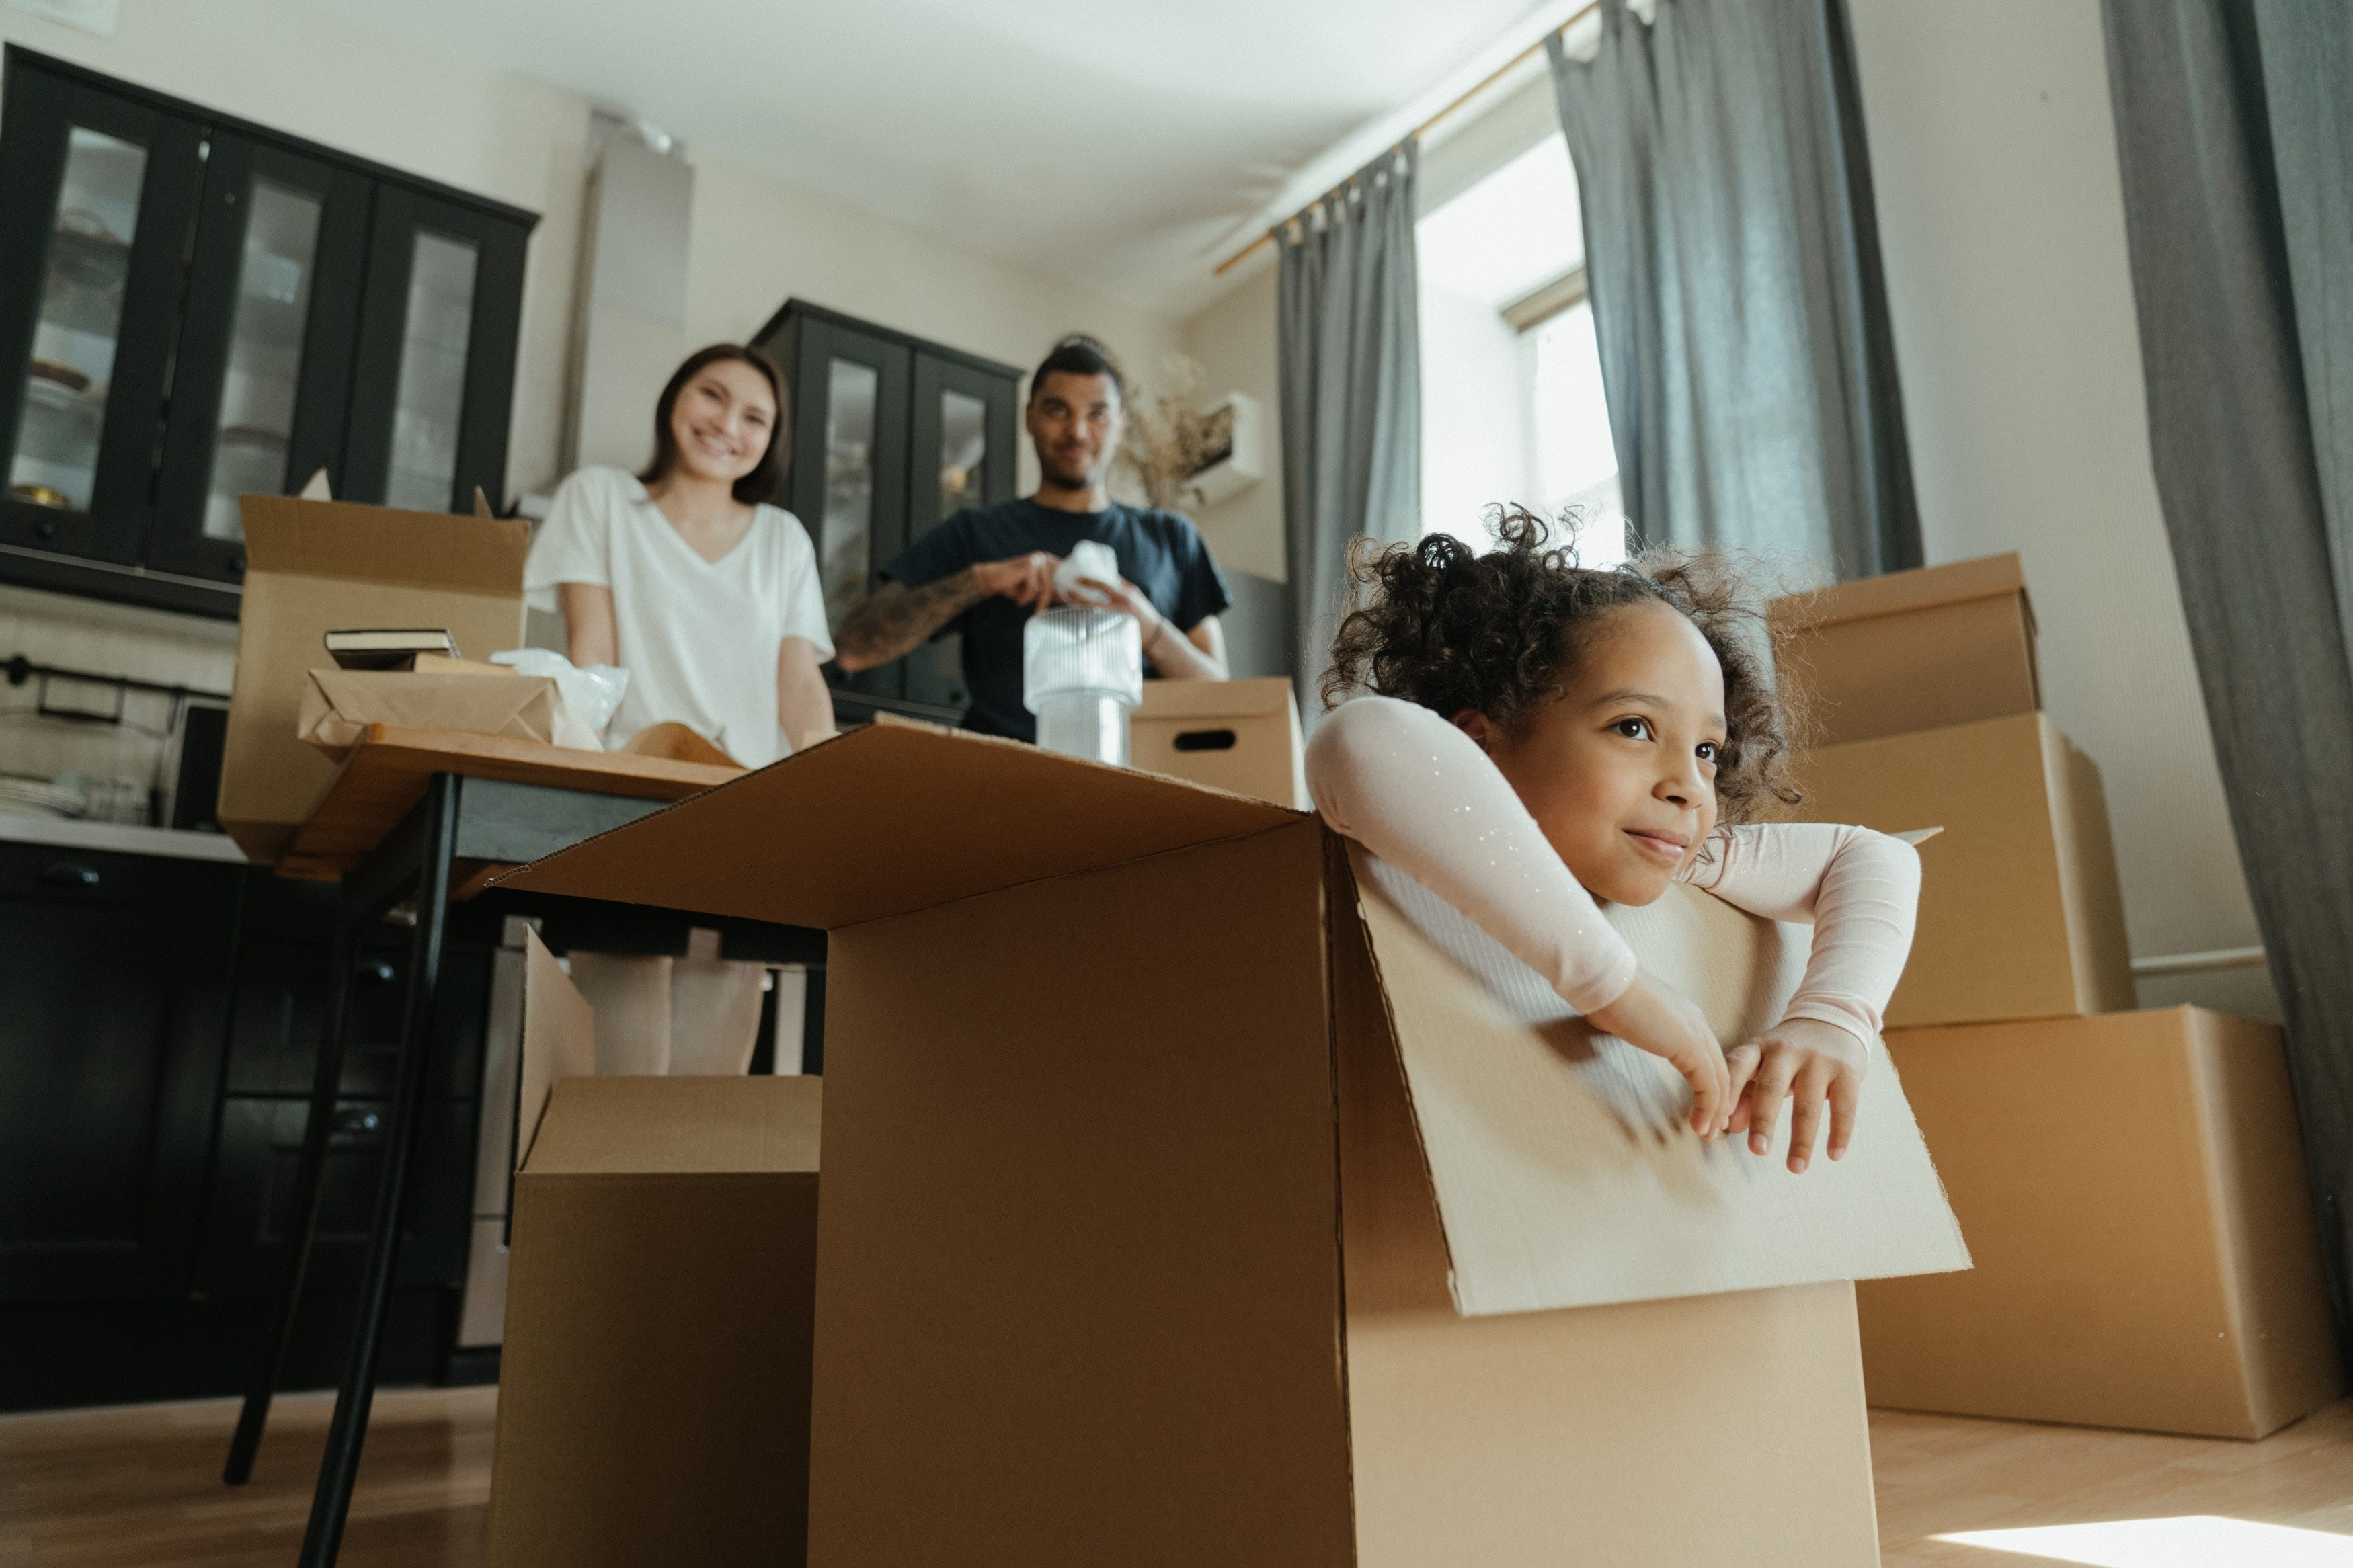 young girl playing in a moving box while parents watch, after choosing the right mortgage broker in their home buying process